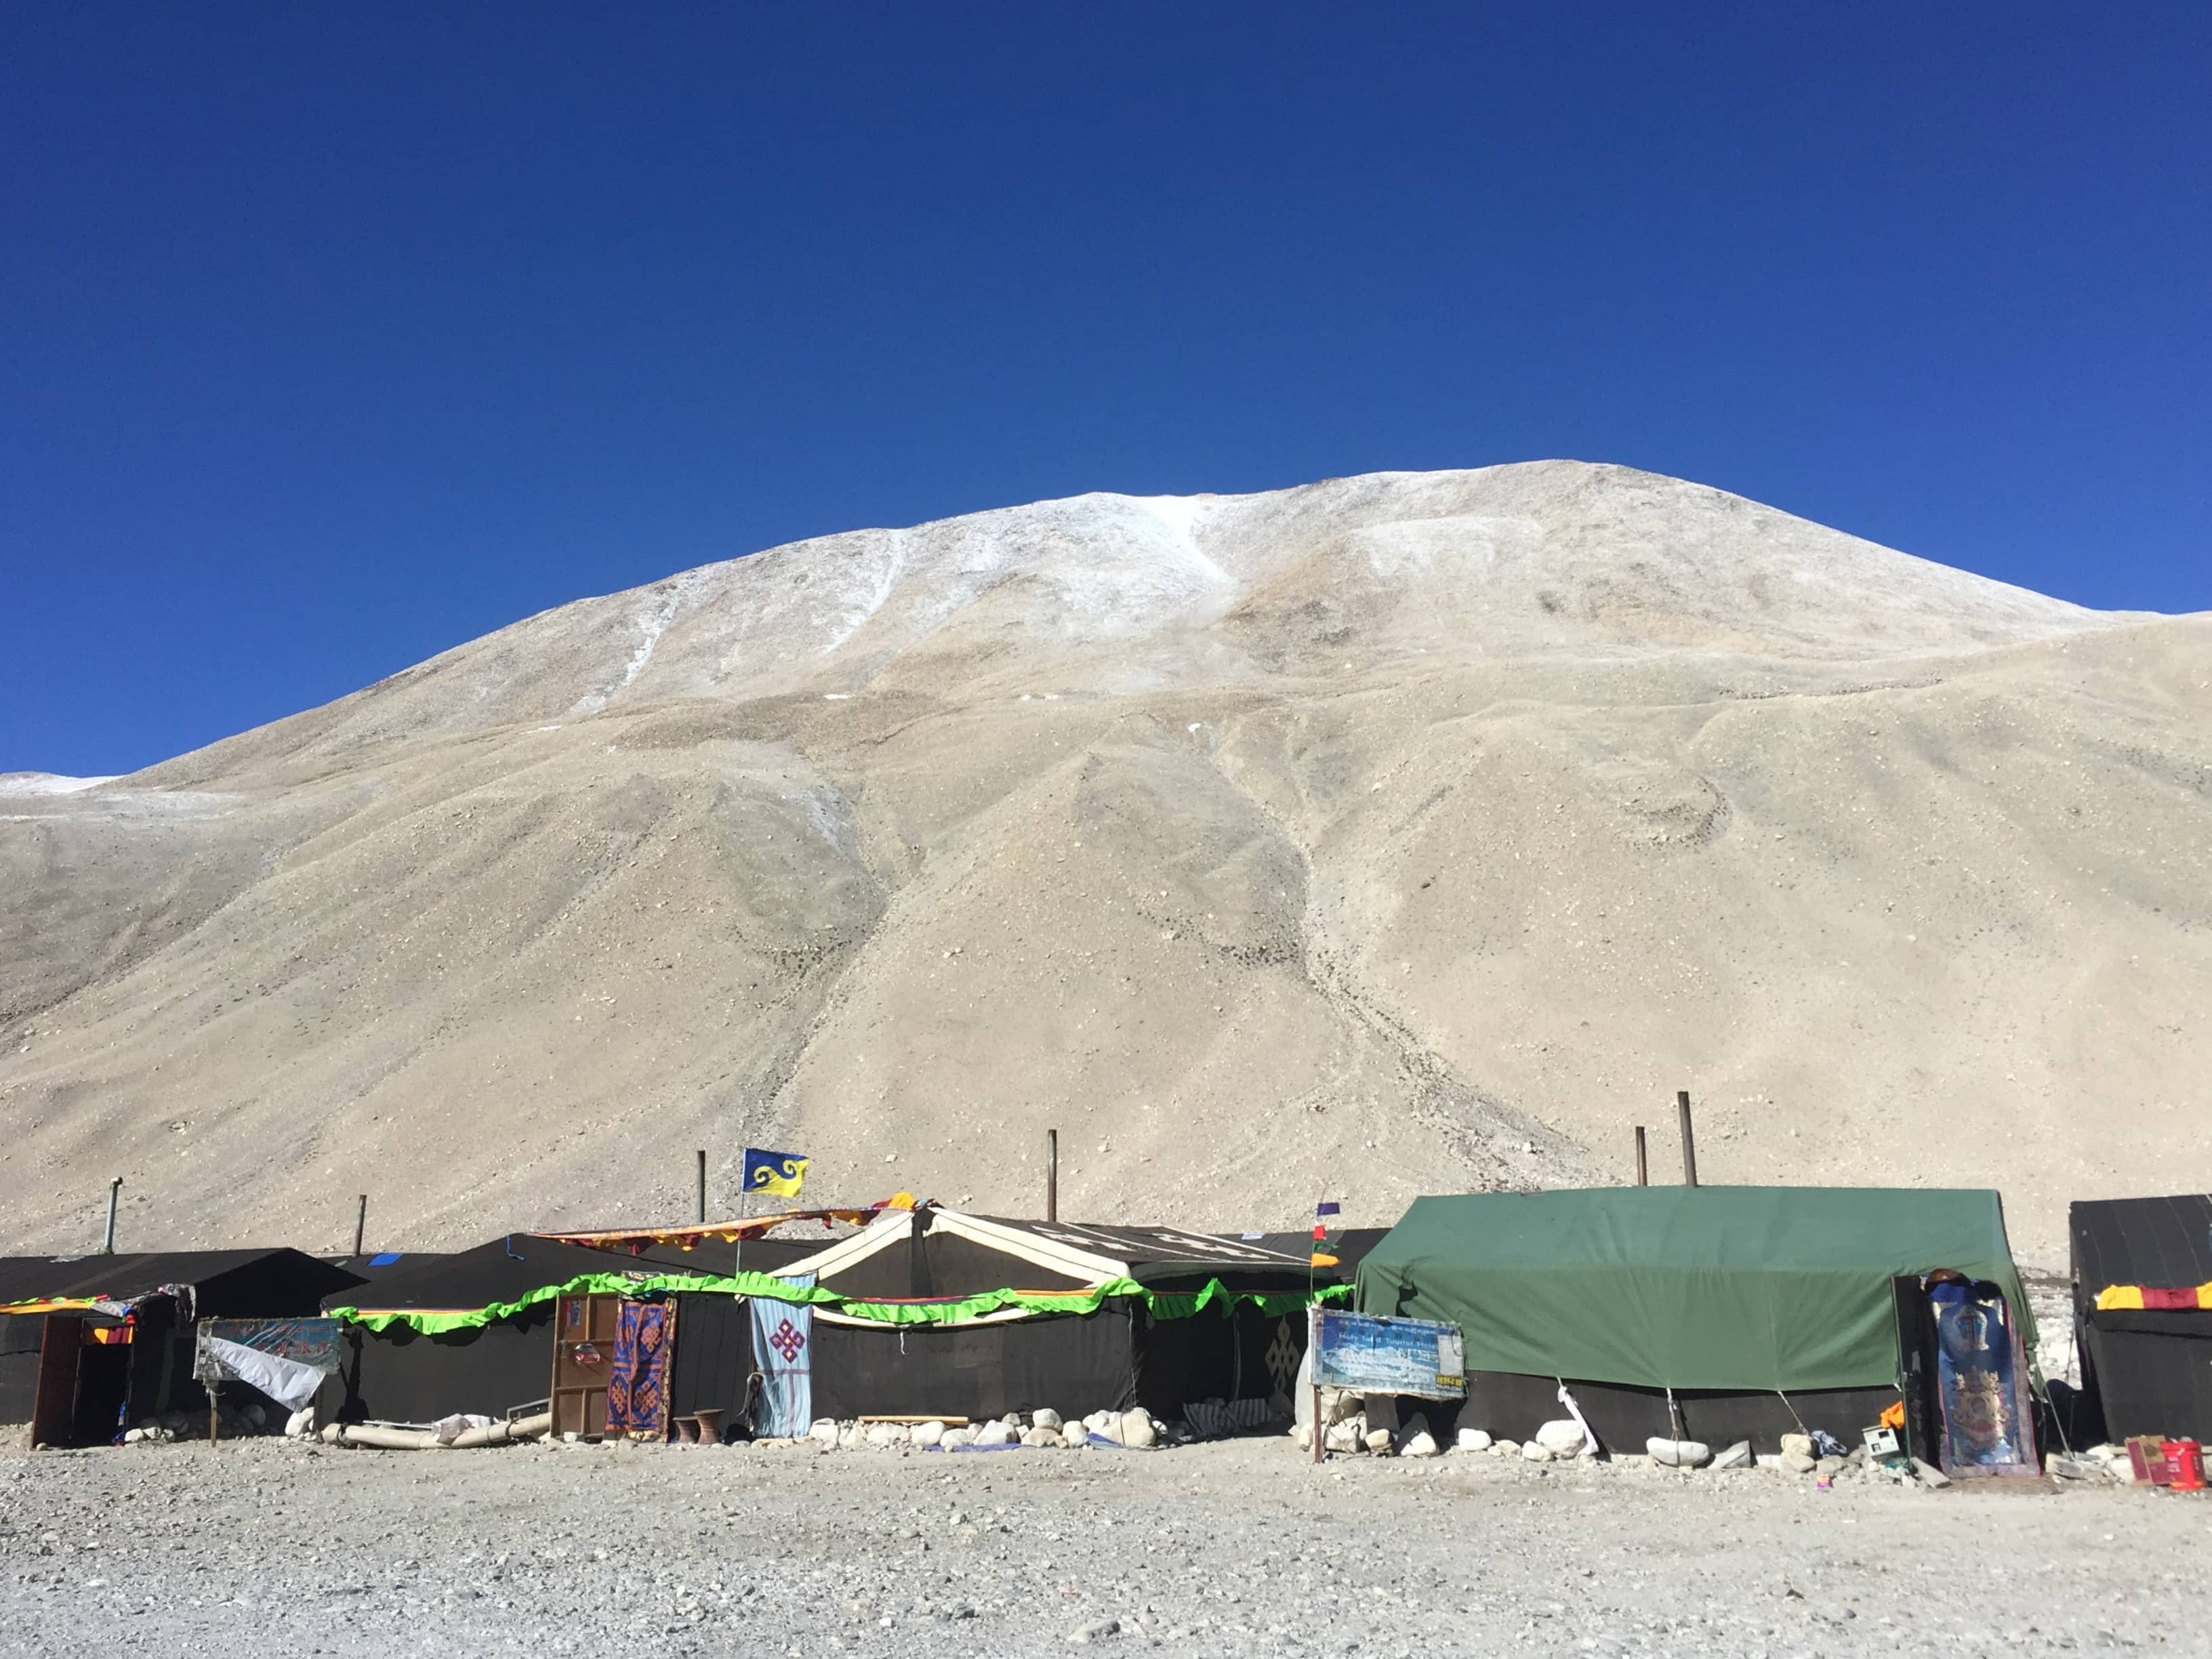 Tents in the camp by the Everest